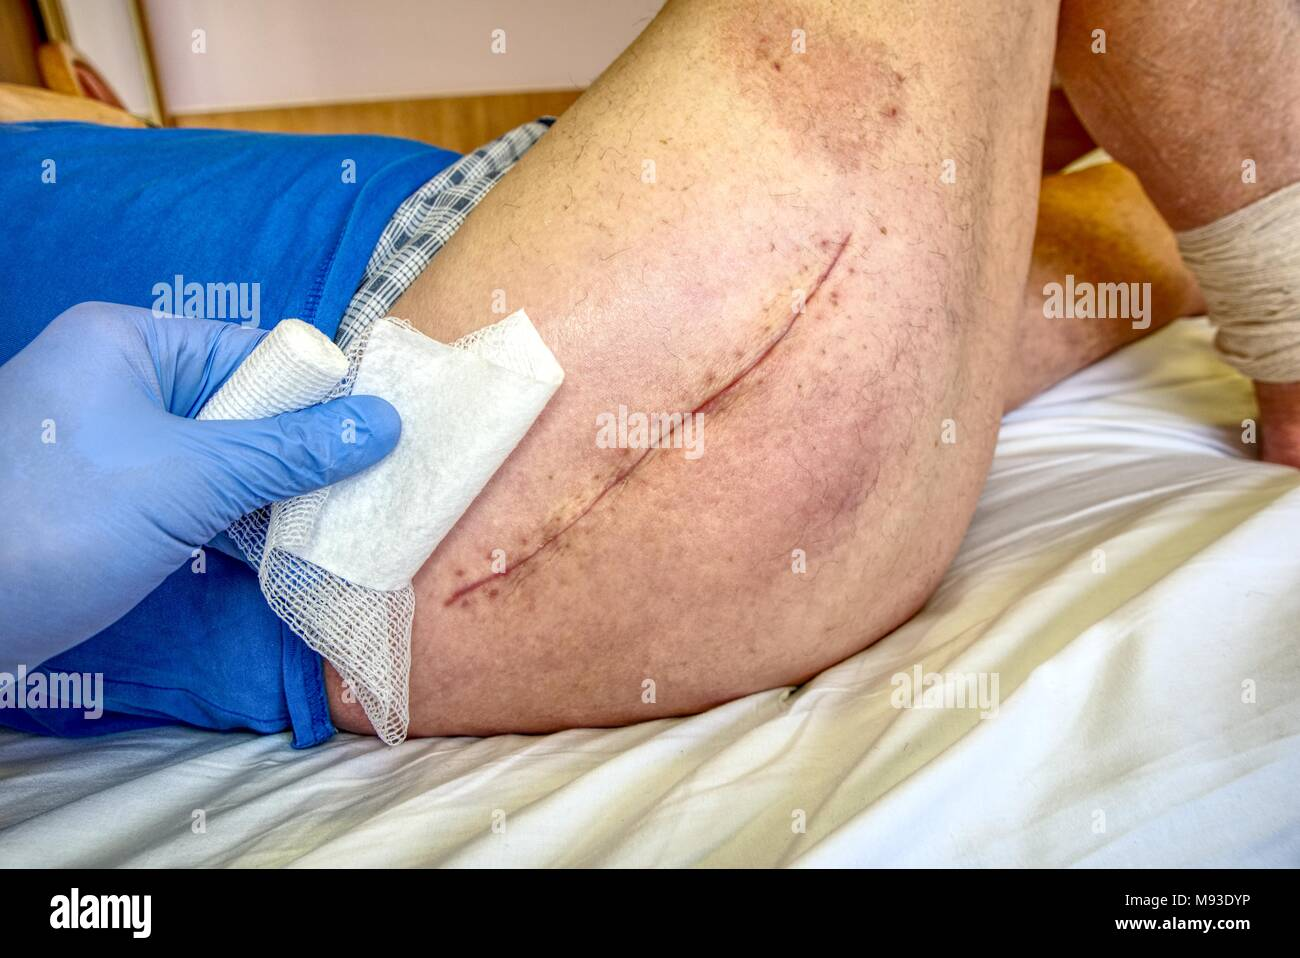 Old Human leg with postoperative scar of hip joint surgery. Selective focus of male body. Heart disease. Medical concept - Stock Image